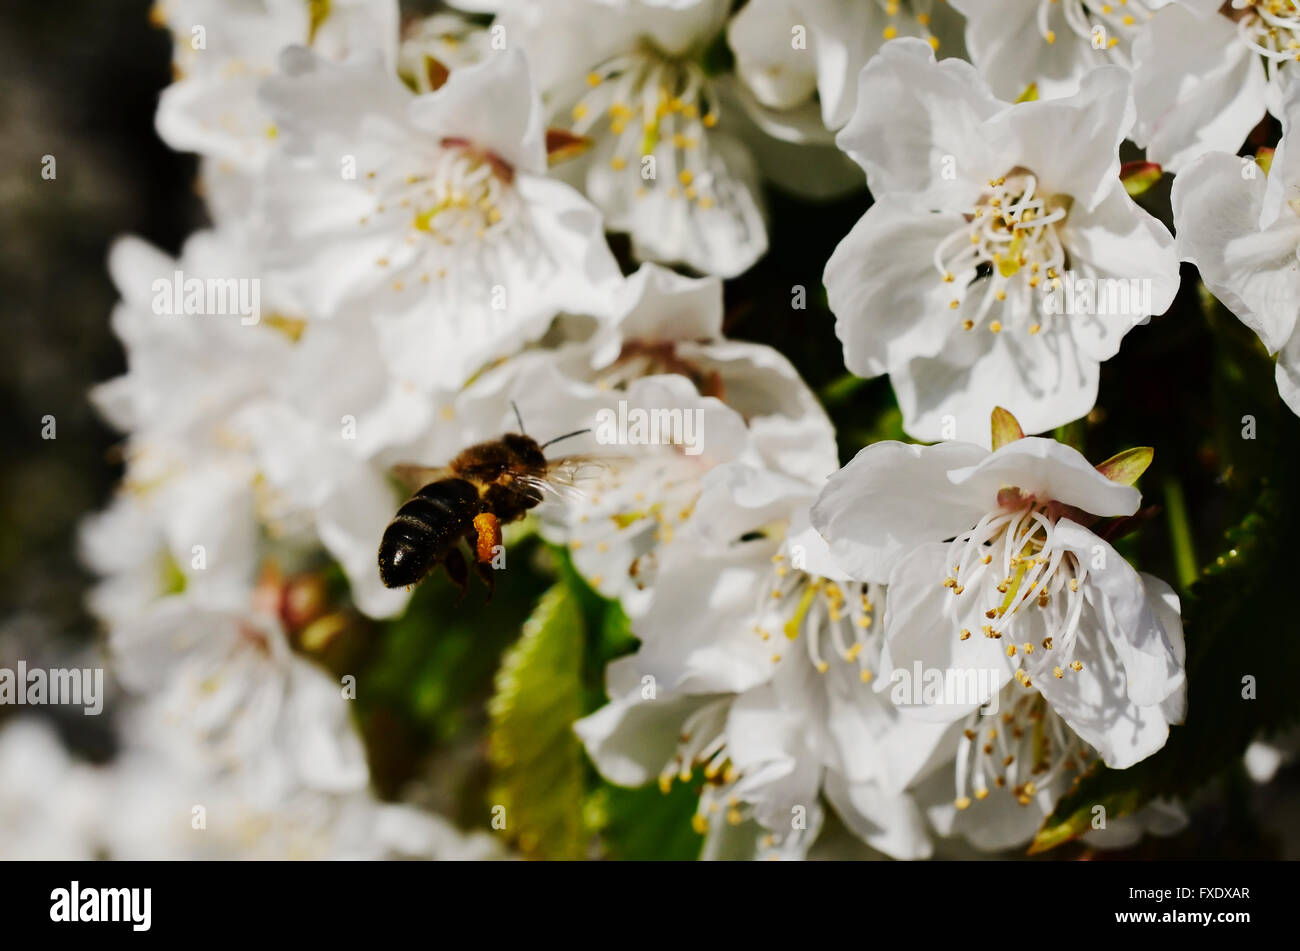 Bee collecting pollen from cherry blossoms. River Valley Jerte. Cáceres. Extremadura. Spain. Europe - Stock Image